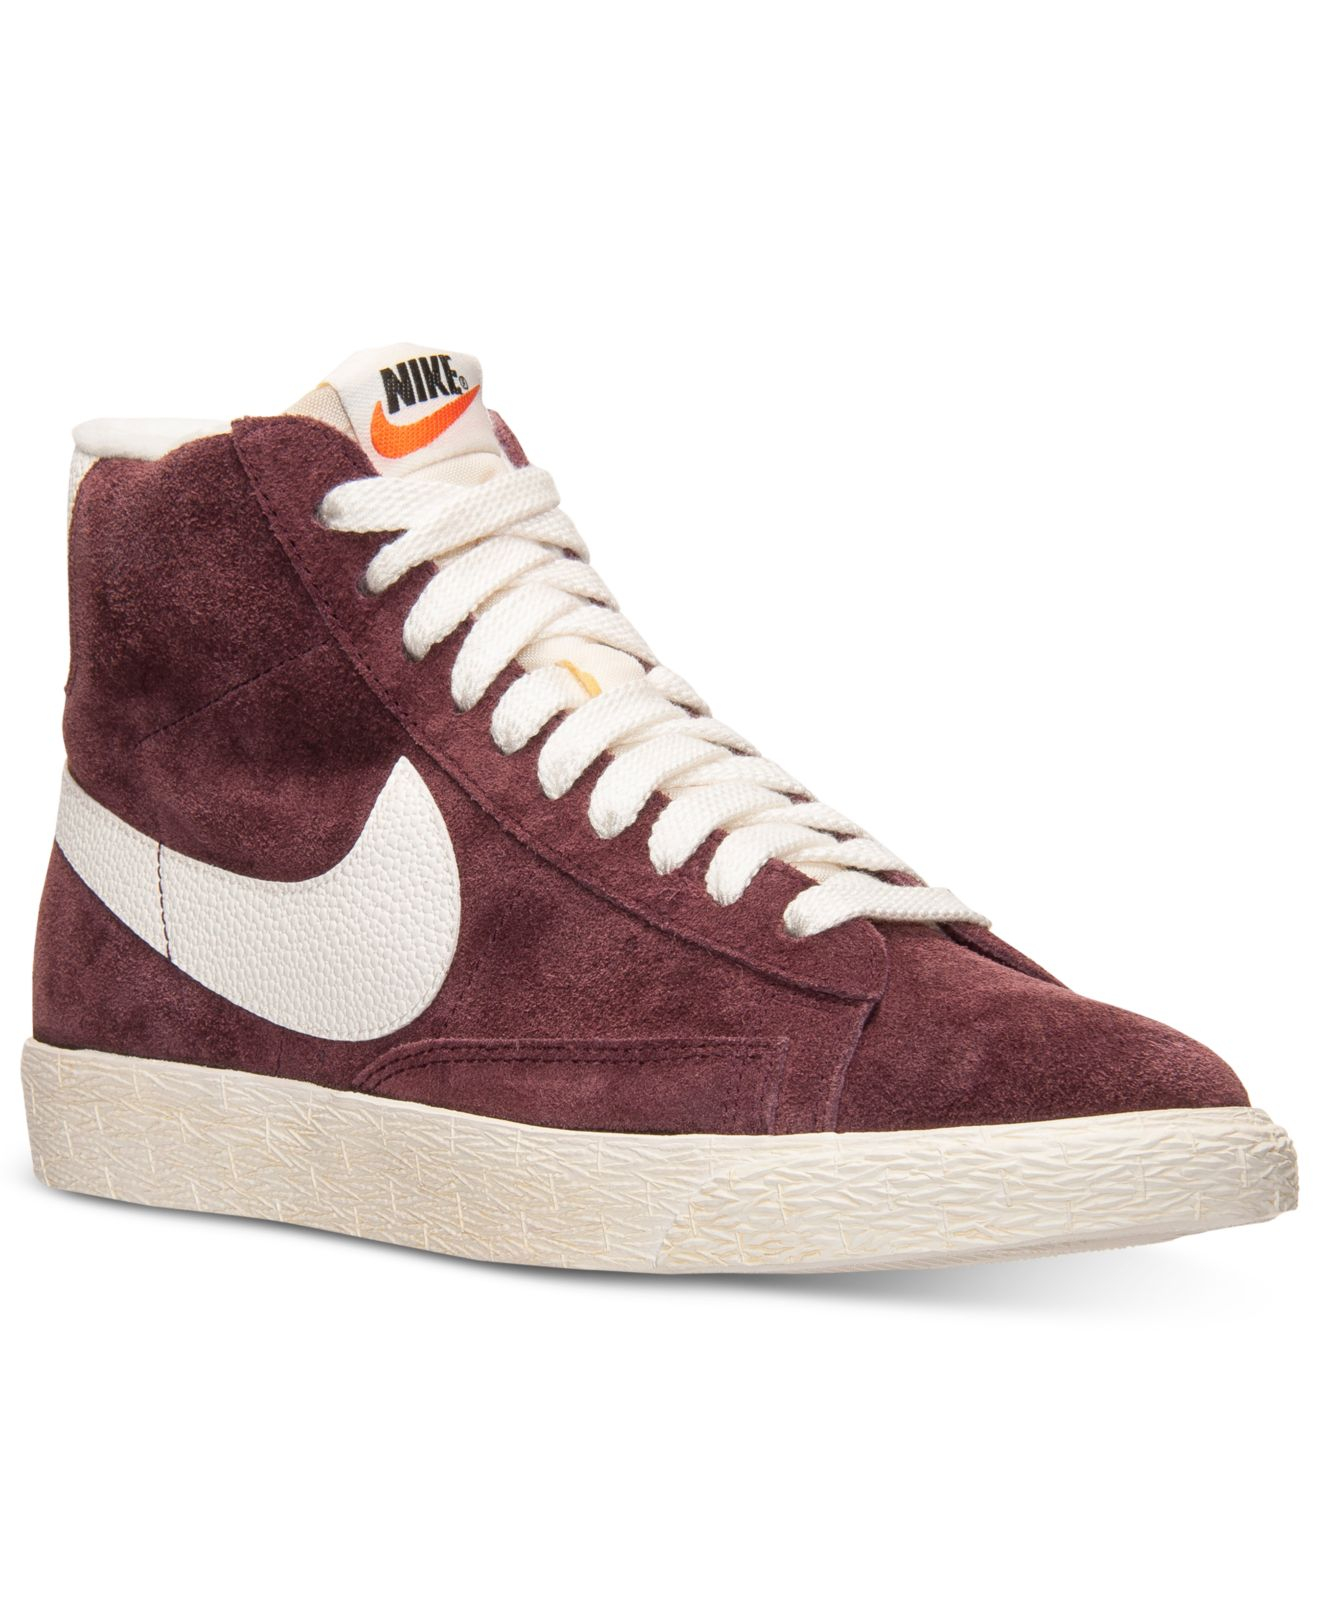 ... burgundy Nike WomenS Blazer Mid Suede Vintage Casual Sneakers From Fi . 9bc1e718c